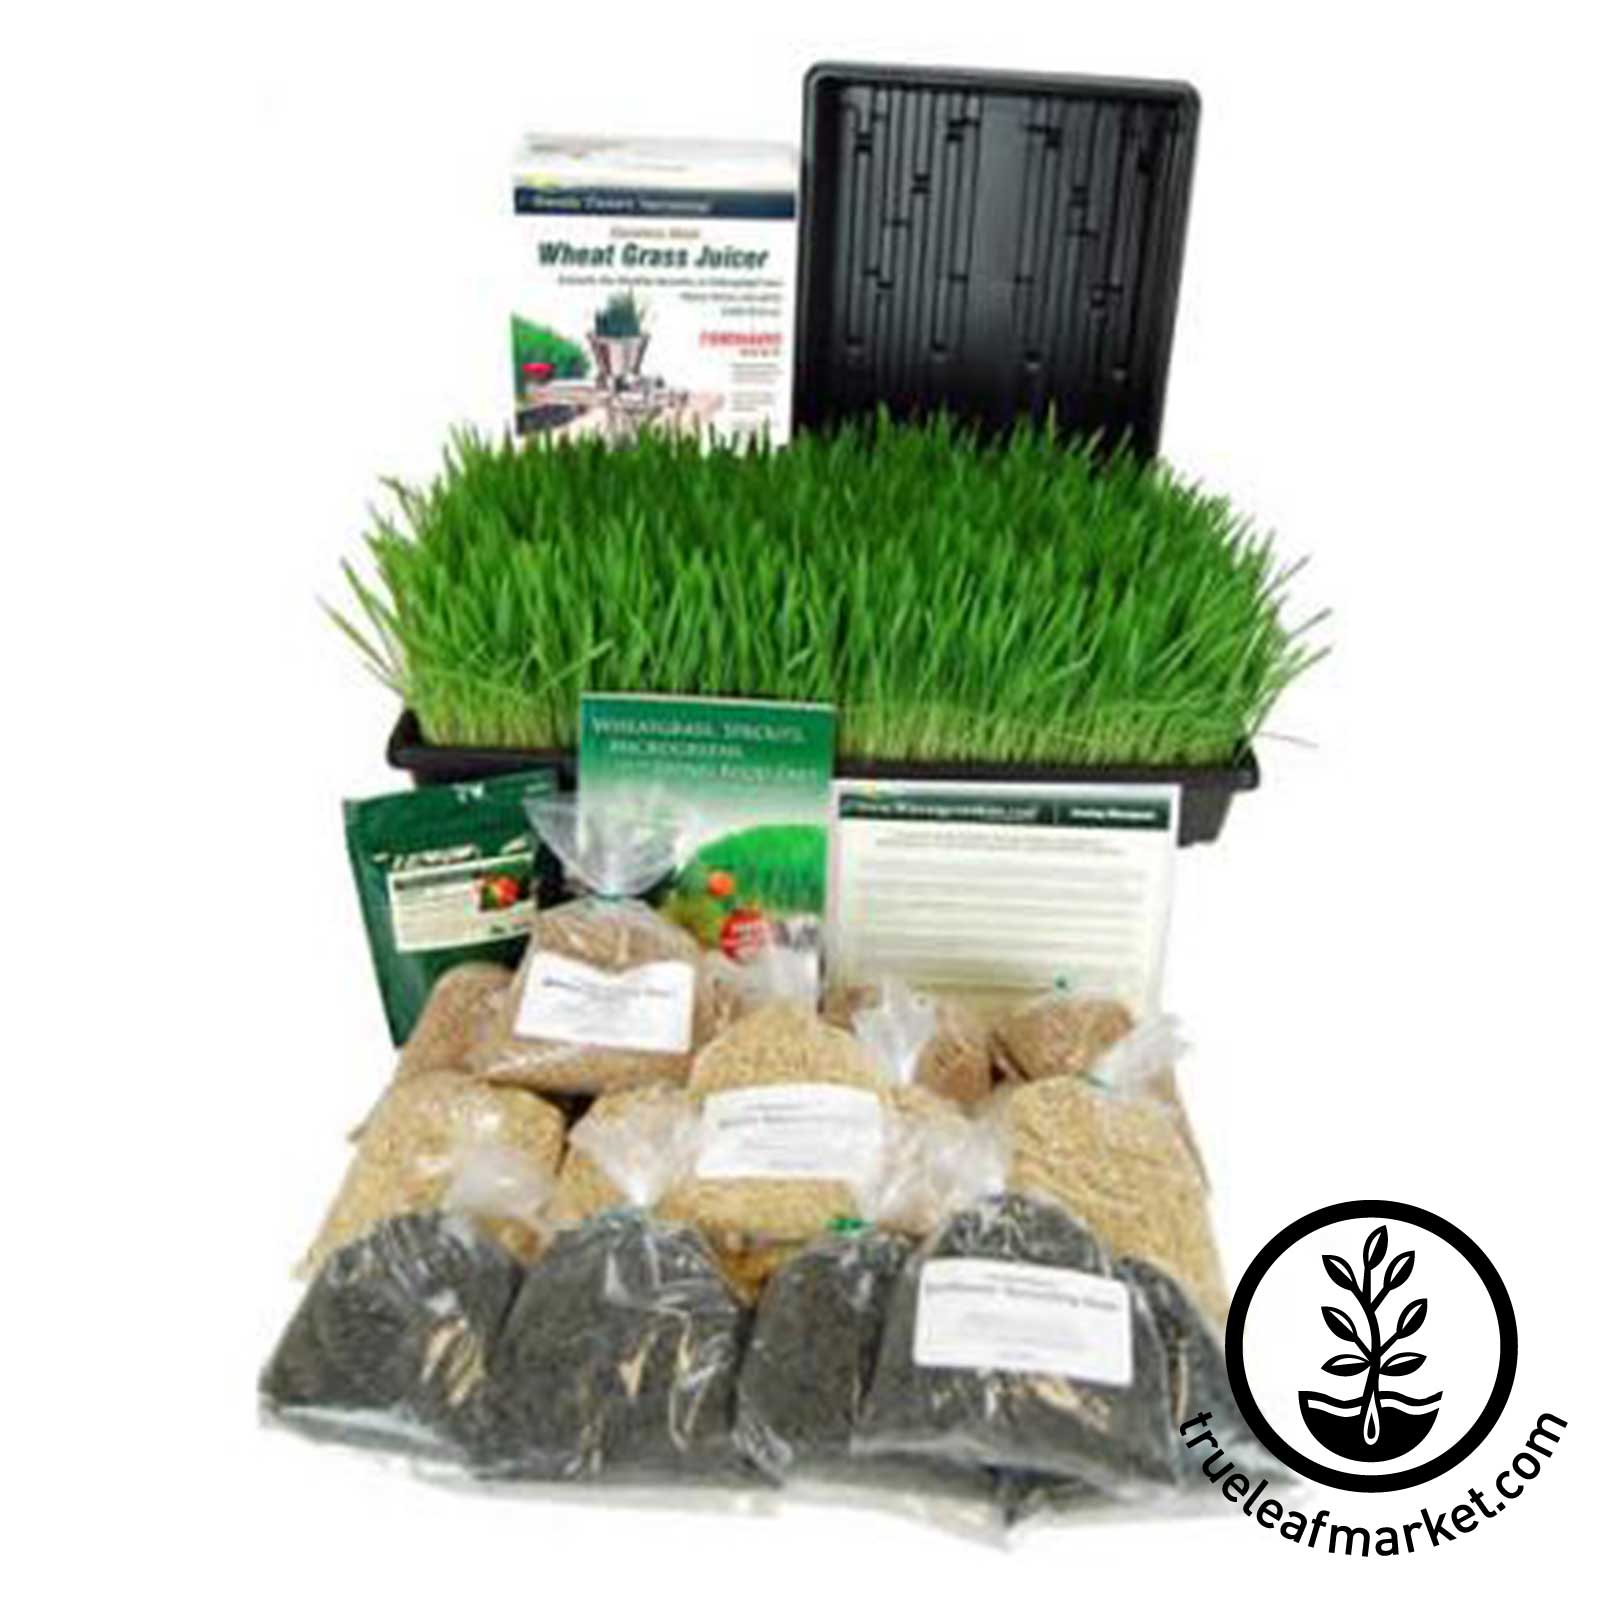 Deluxe Kit + Juicer (Wheatgrass Barleygrass and Sunflower) wheat grass, wheatgrass, wheatgrass juicers, wheat grass juicers, back to basics juicer, tornado juicer, manual juicer, barleygrass, sprouts, broccoli sprouts, wheat seed, ann wigmore, wheatgrass kit, grow, growing, juicing, wheat grass juice, wheat grass seed